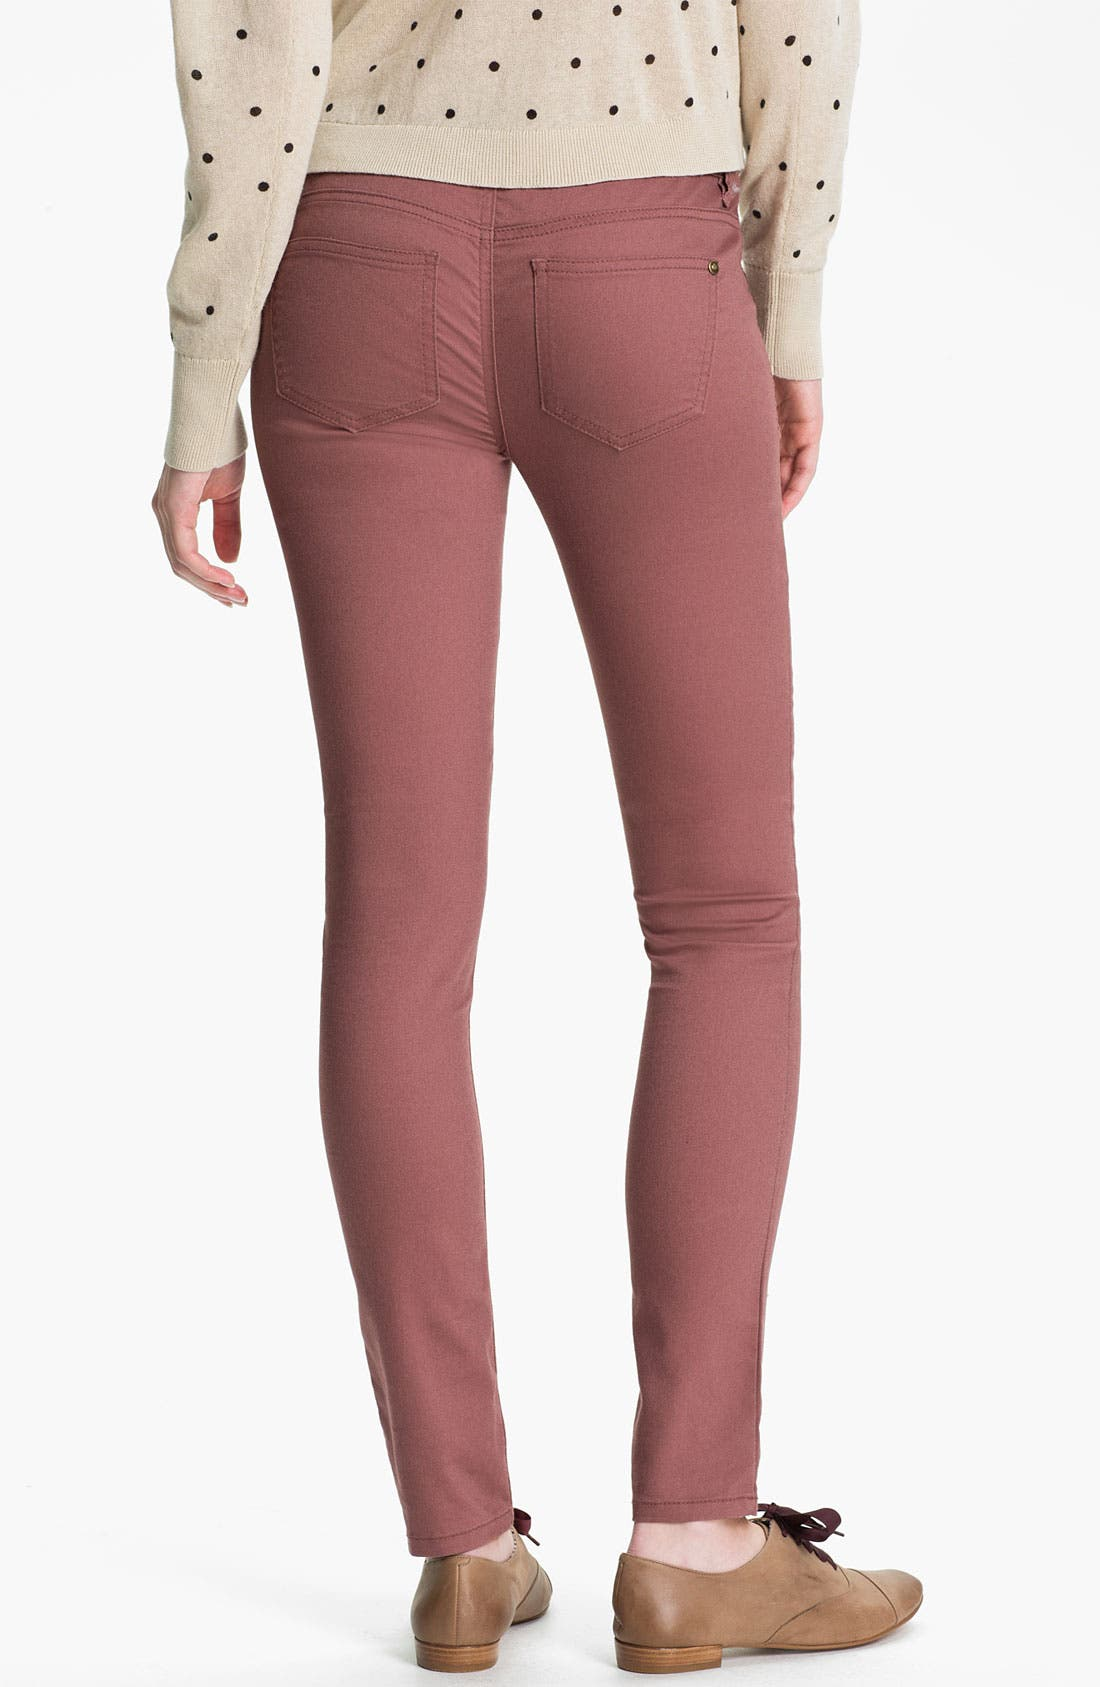 Alternate Image 1 Selected - Fire Skinny Jeans (Juniors)